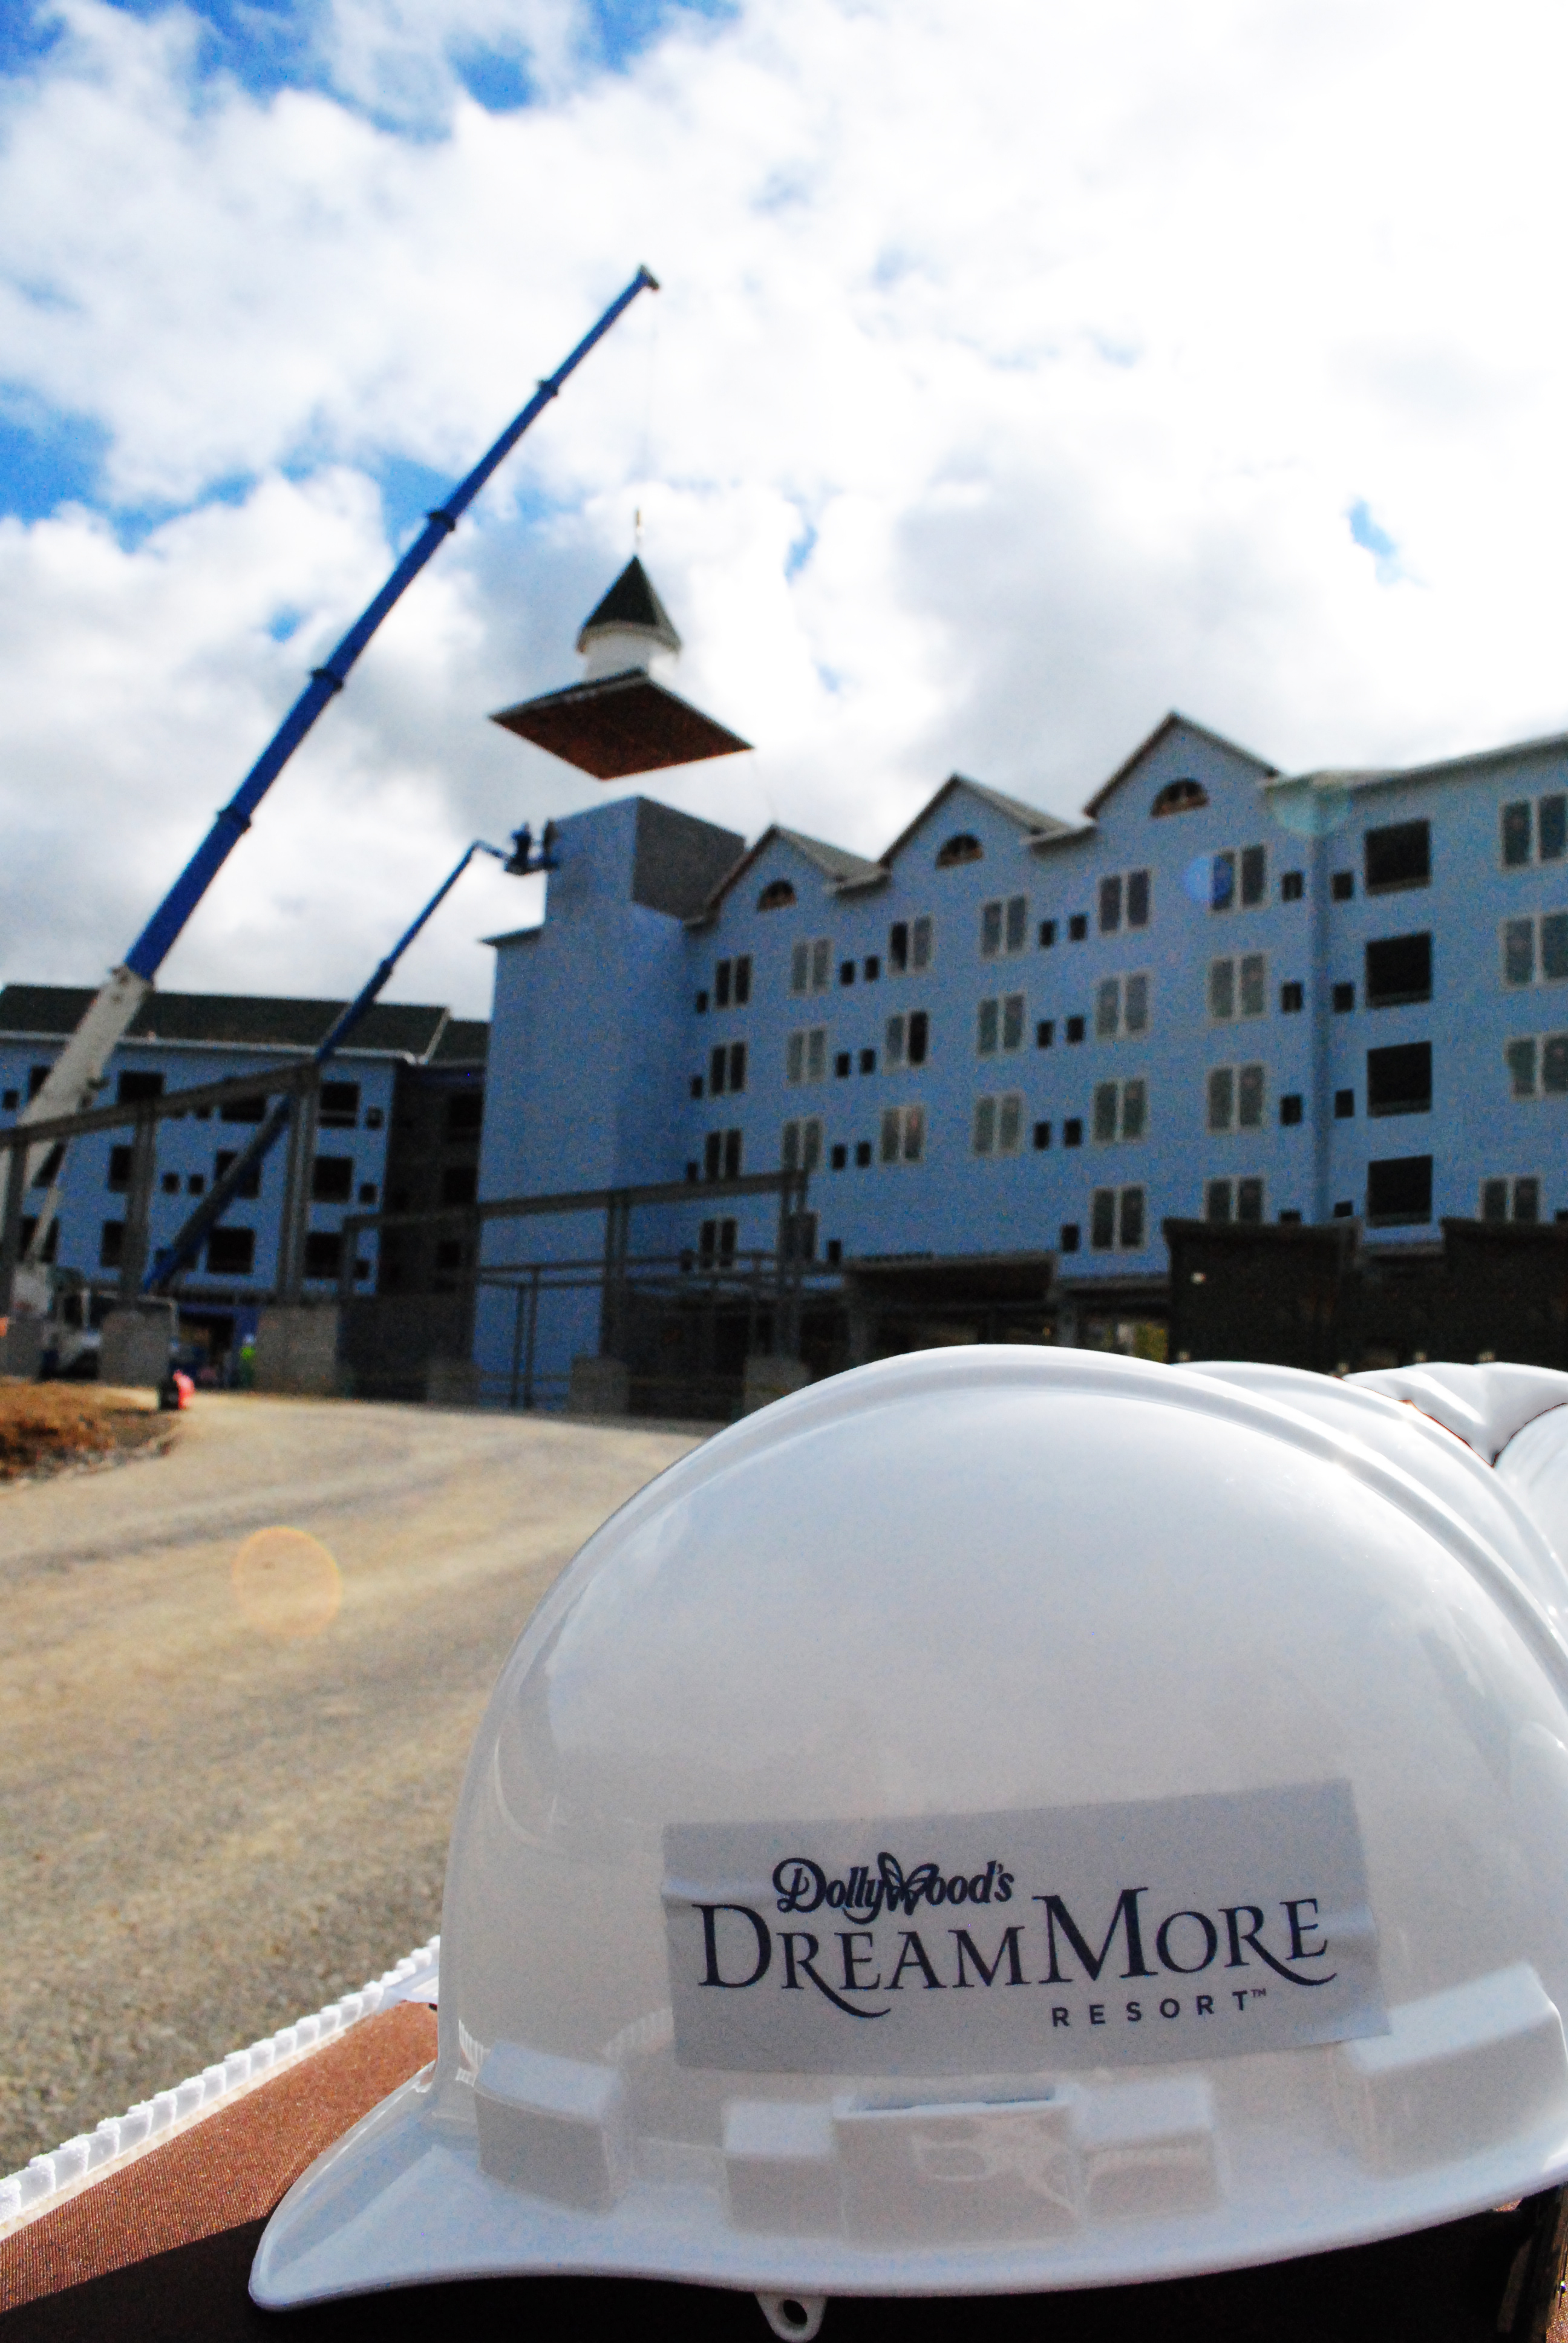 Dollywood's DreamMore Resort Reaches Construction Milestone  